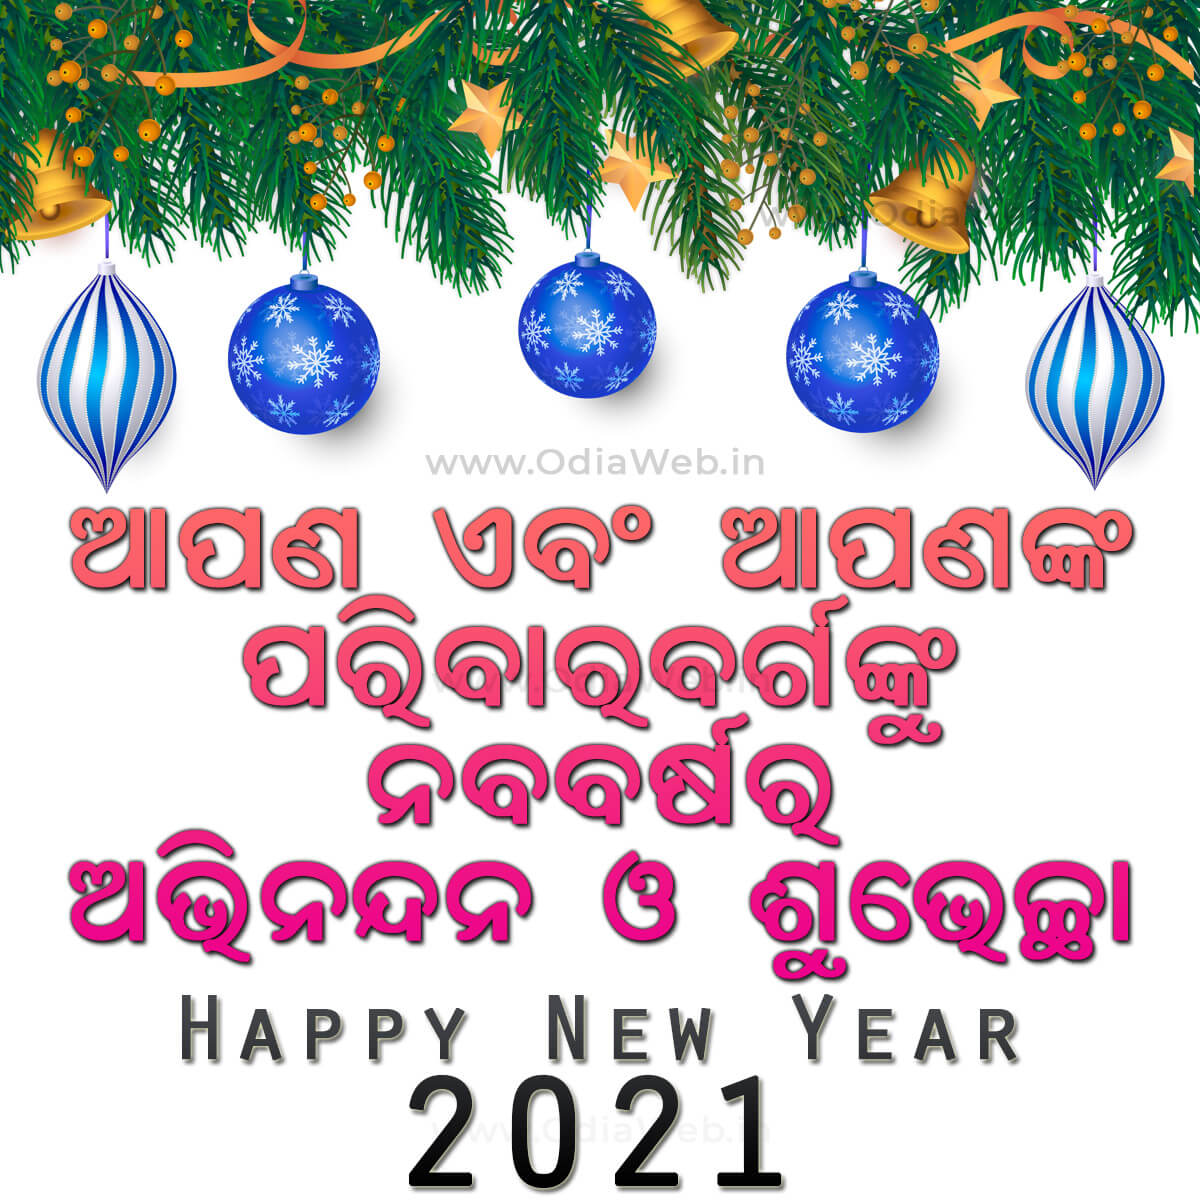 Happy New Year 2021 Wish In Odia